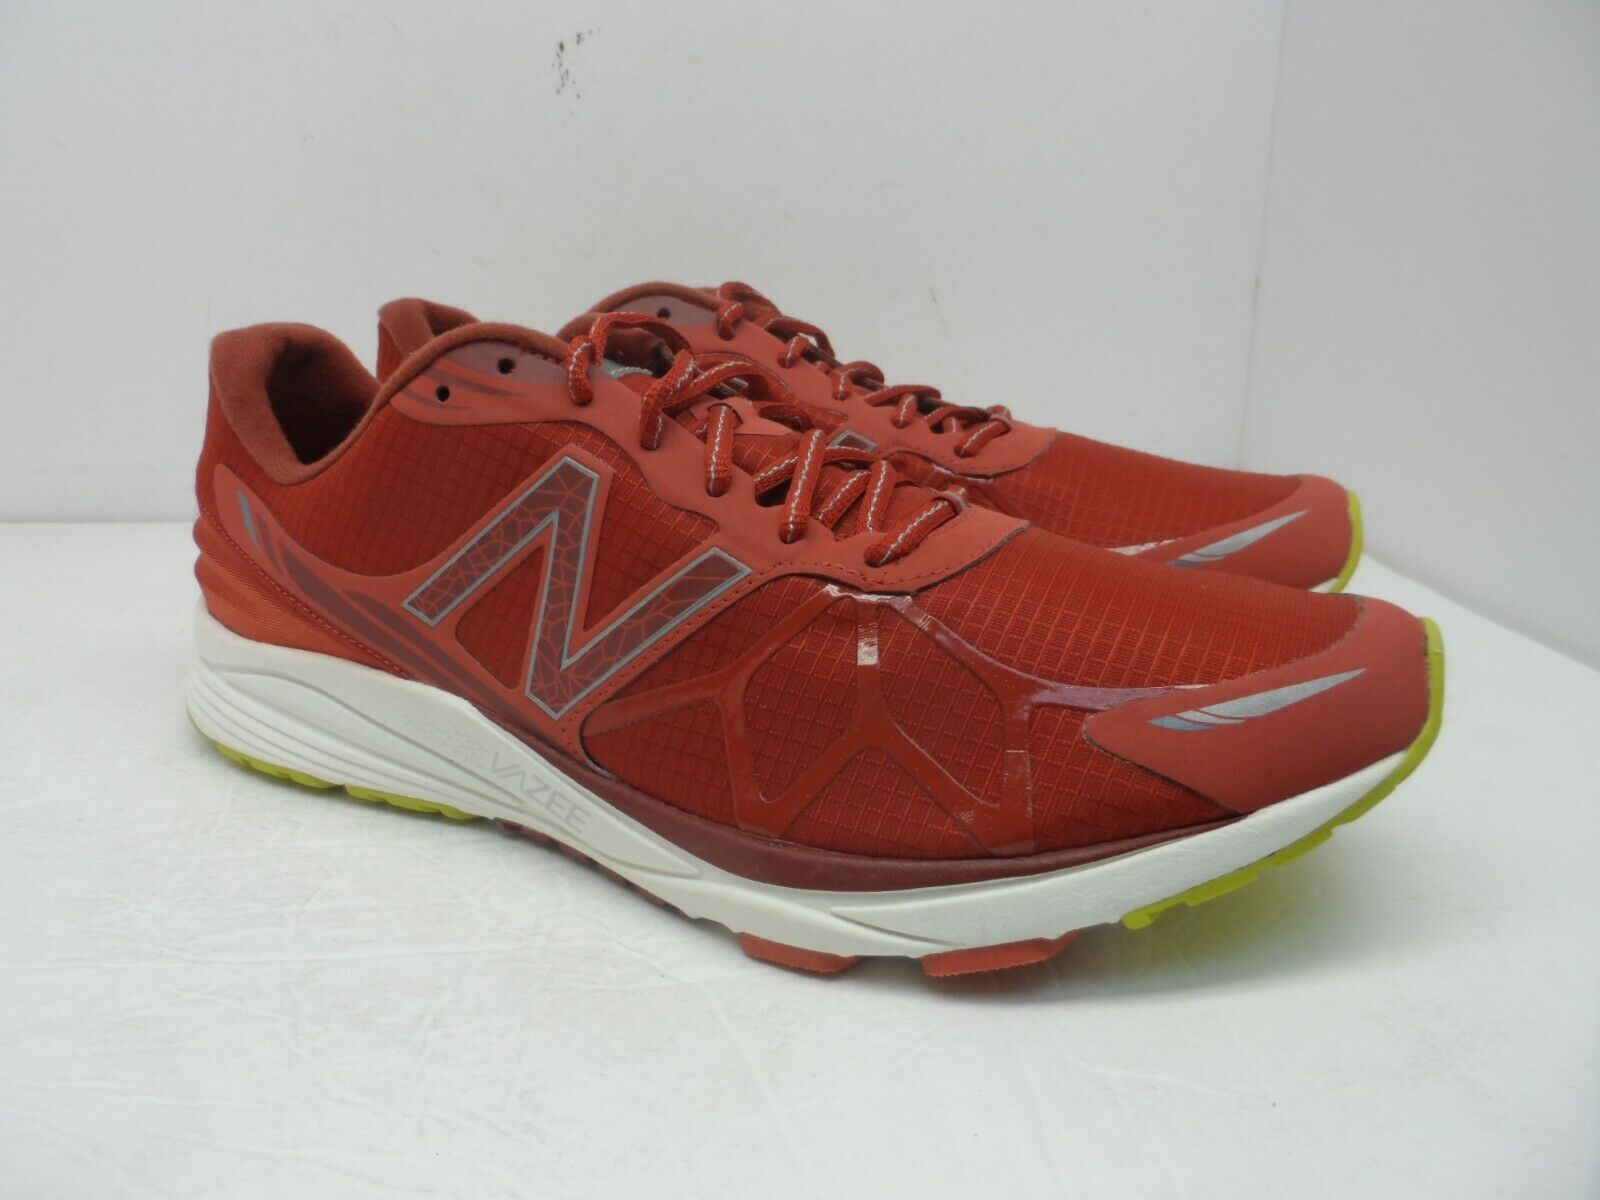 New Balance Men's Vazee Pace REVlite Cross Training Running shoes Red Size 14D